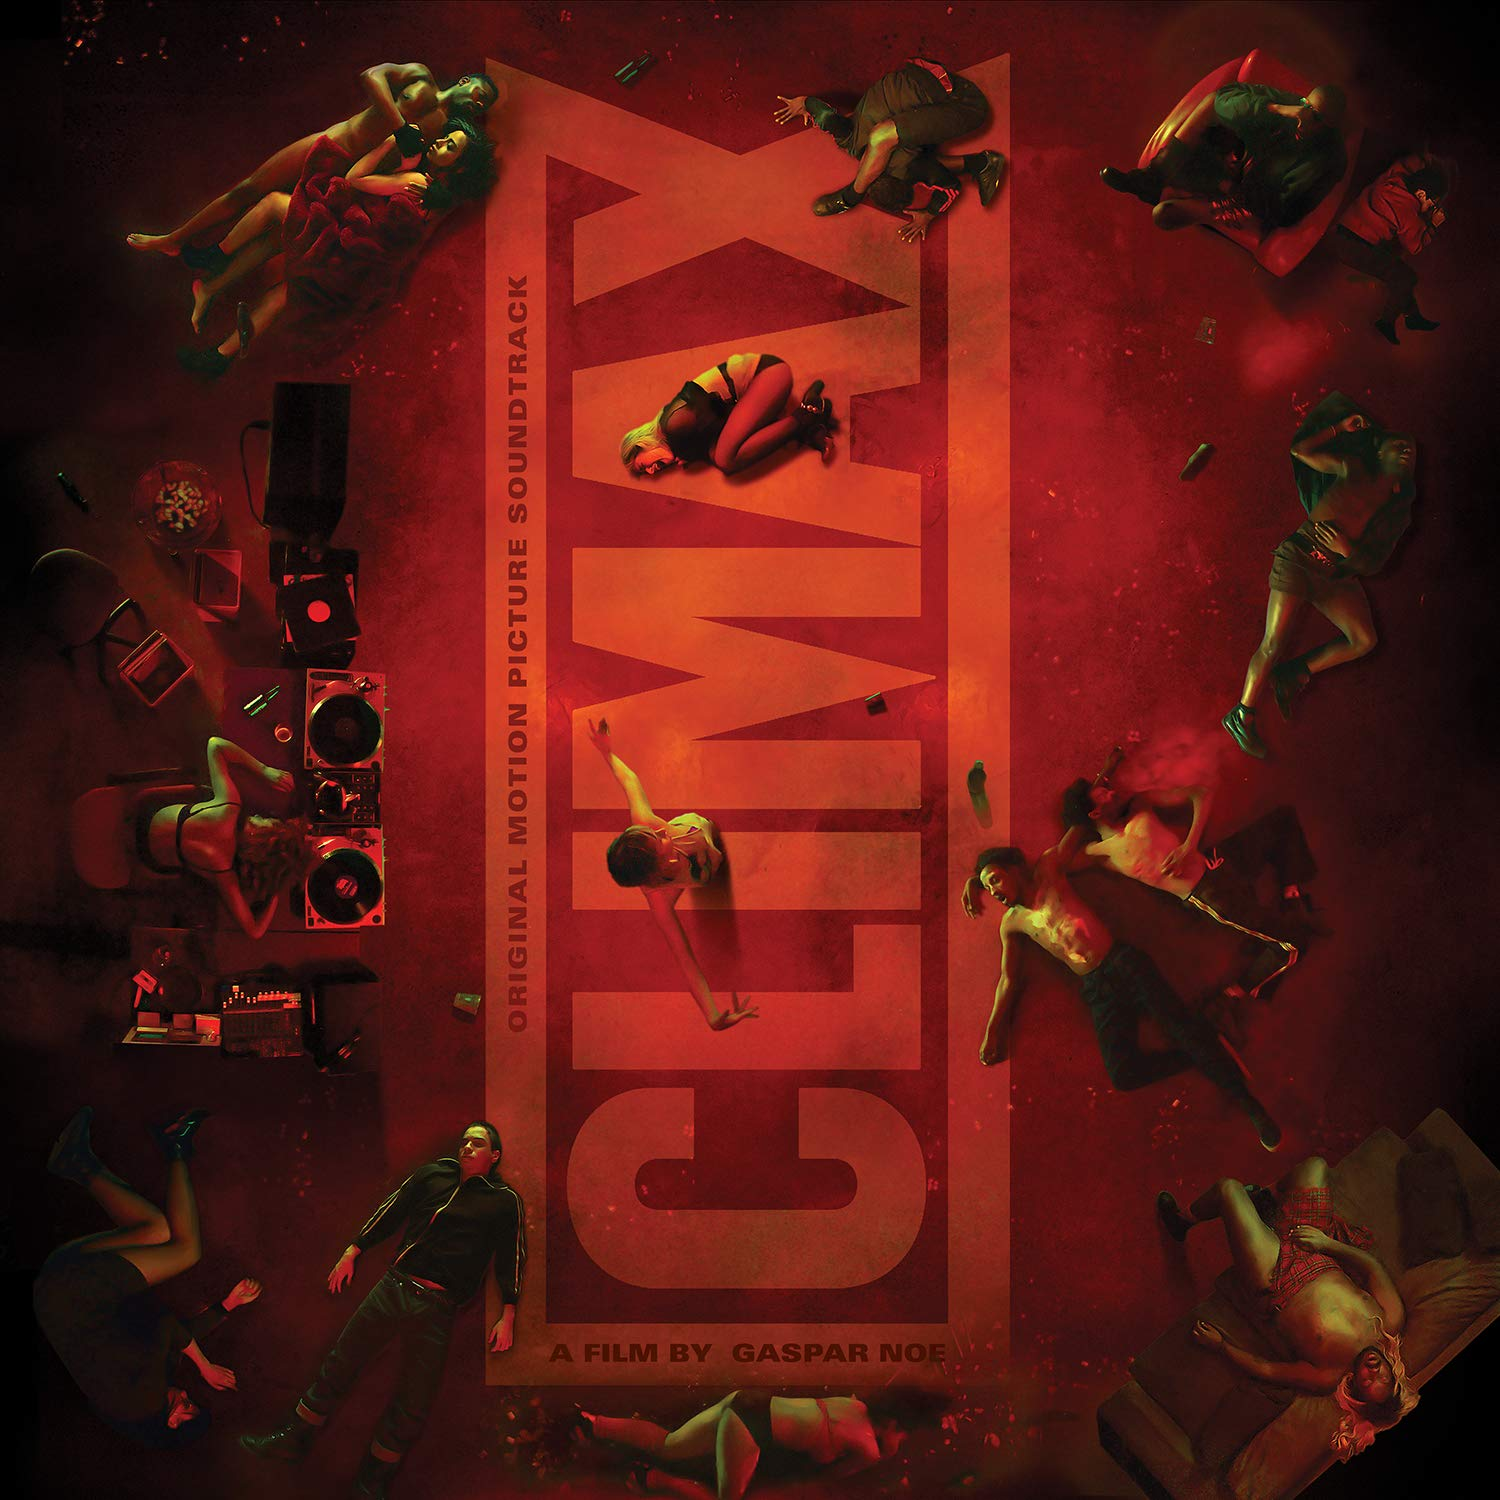 Climax [Movie] - Climax: Original Motion Picture Soundtrack [LP]